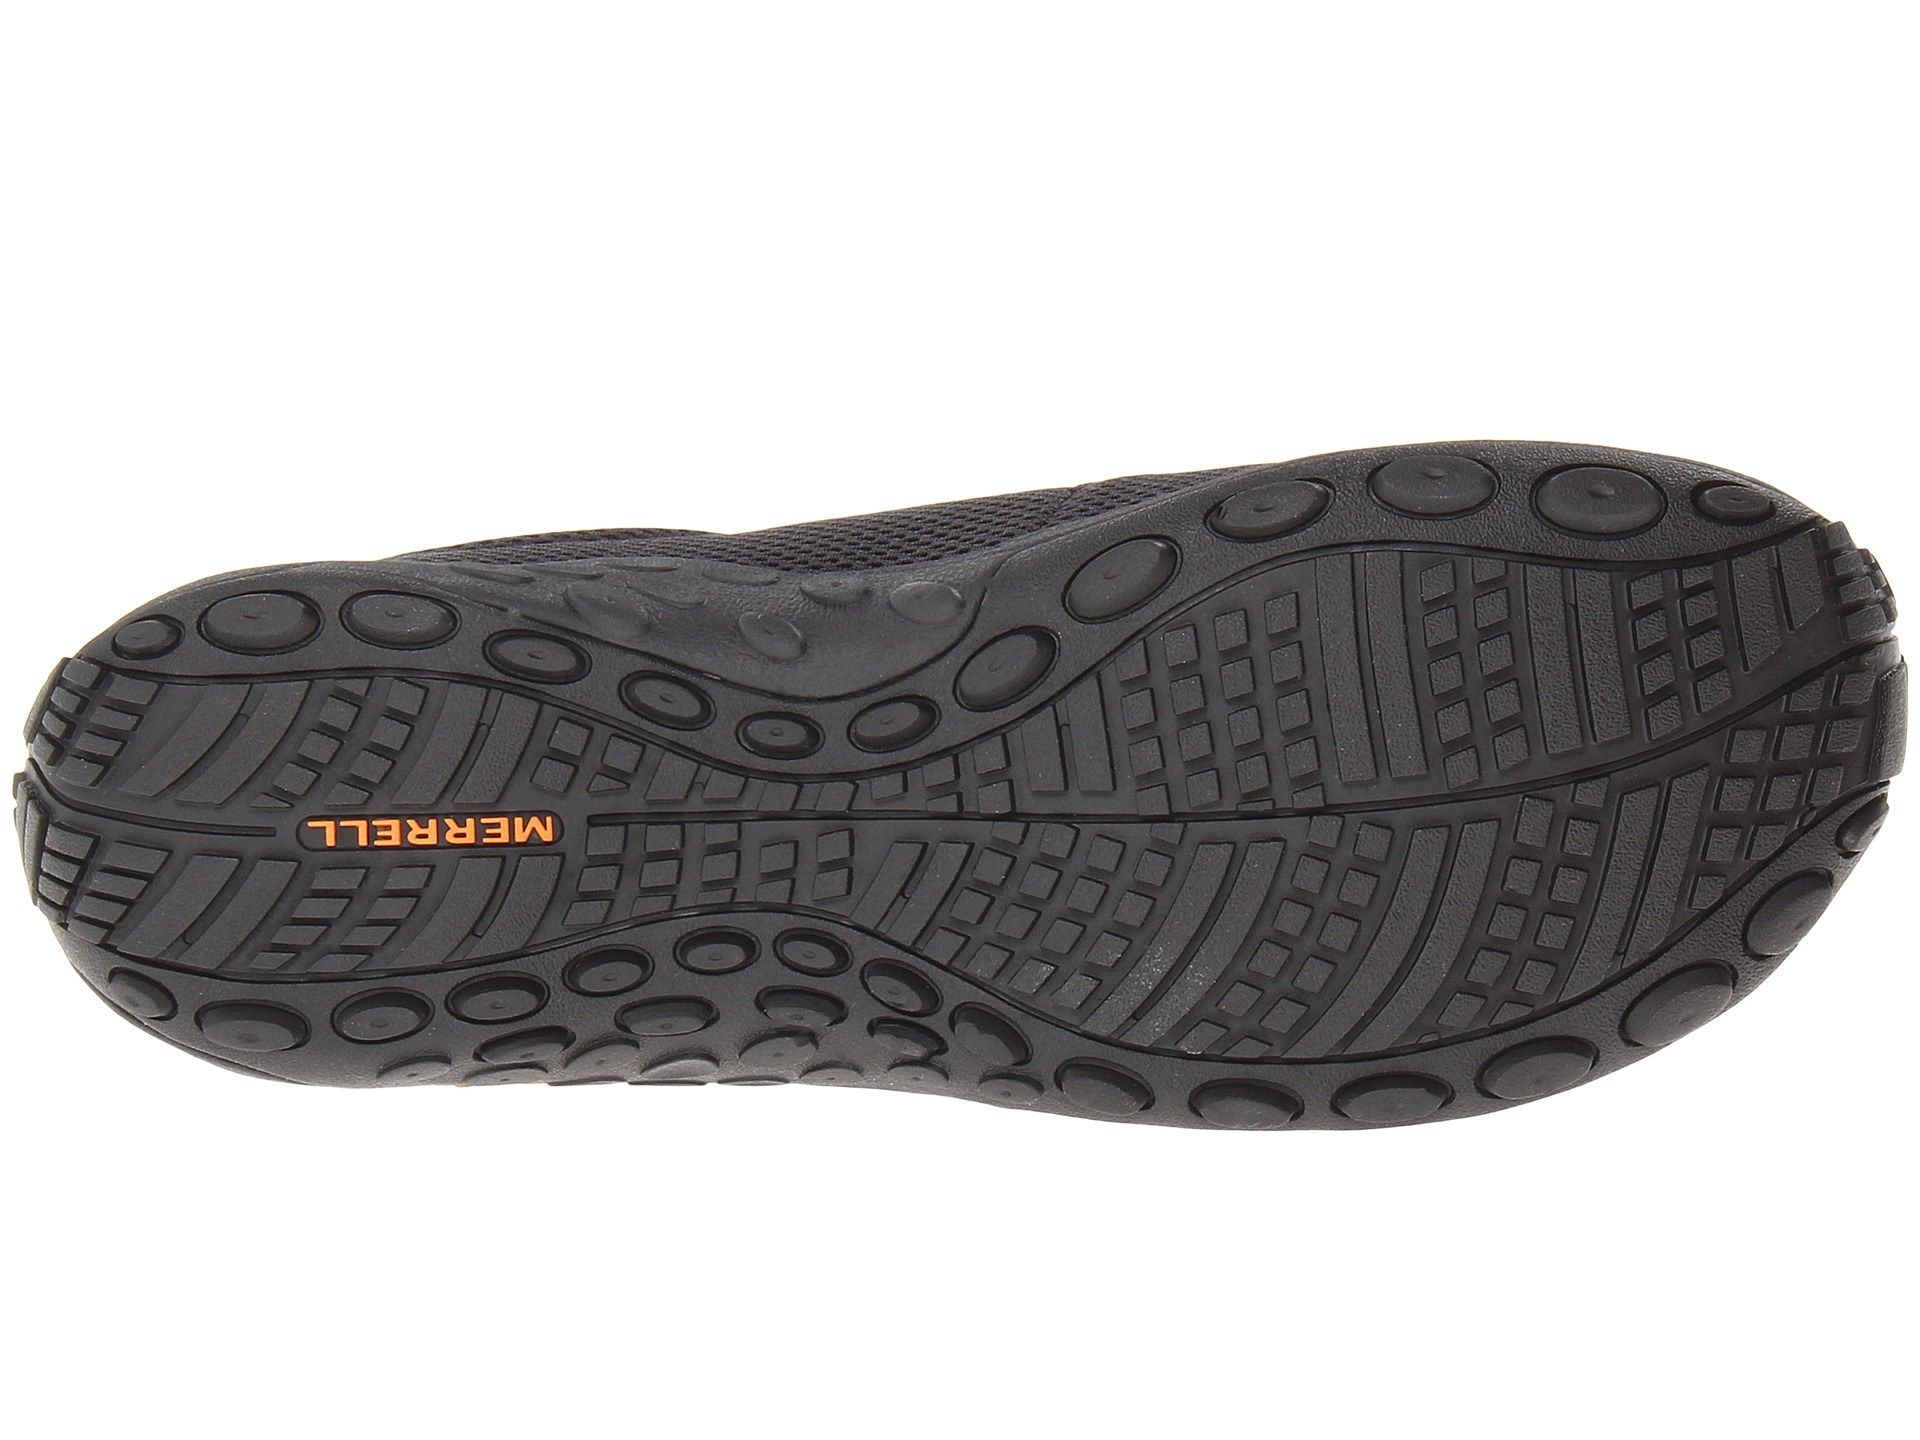 Merrell Women S Jungle Moc Touch Breeze Slip On Shoe